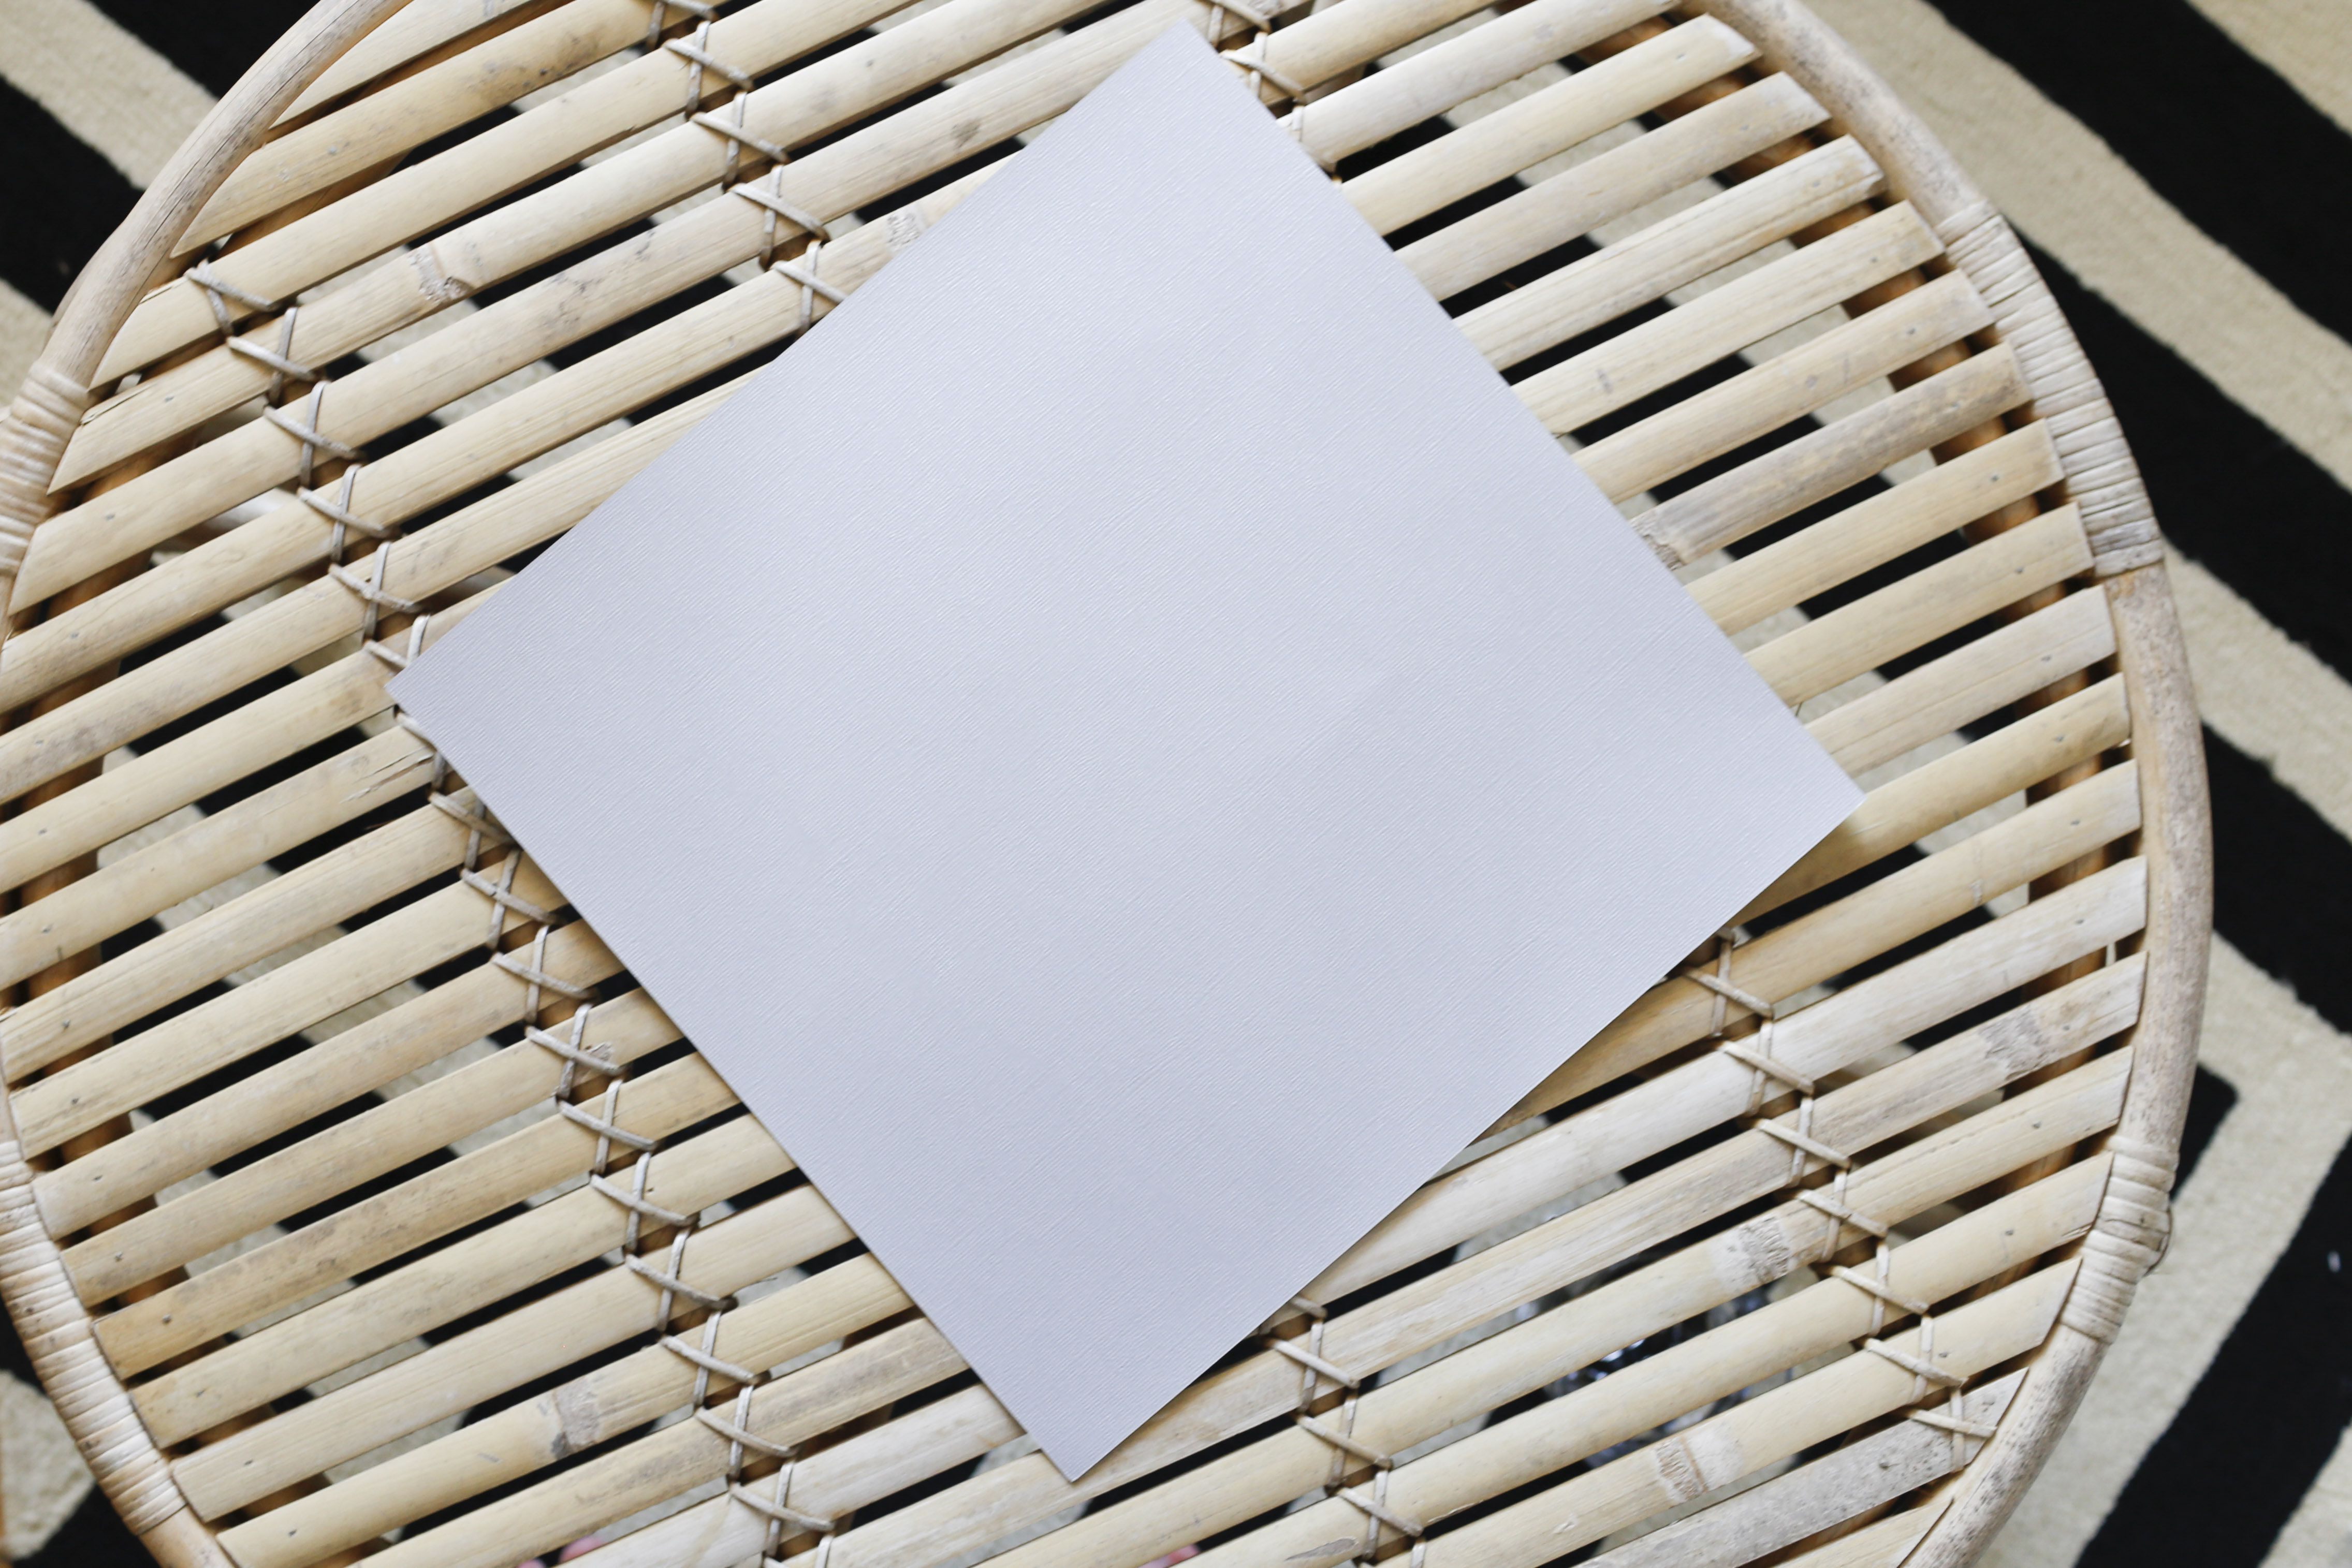 Sheet of paper on a table.